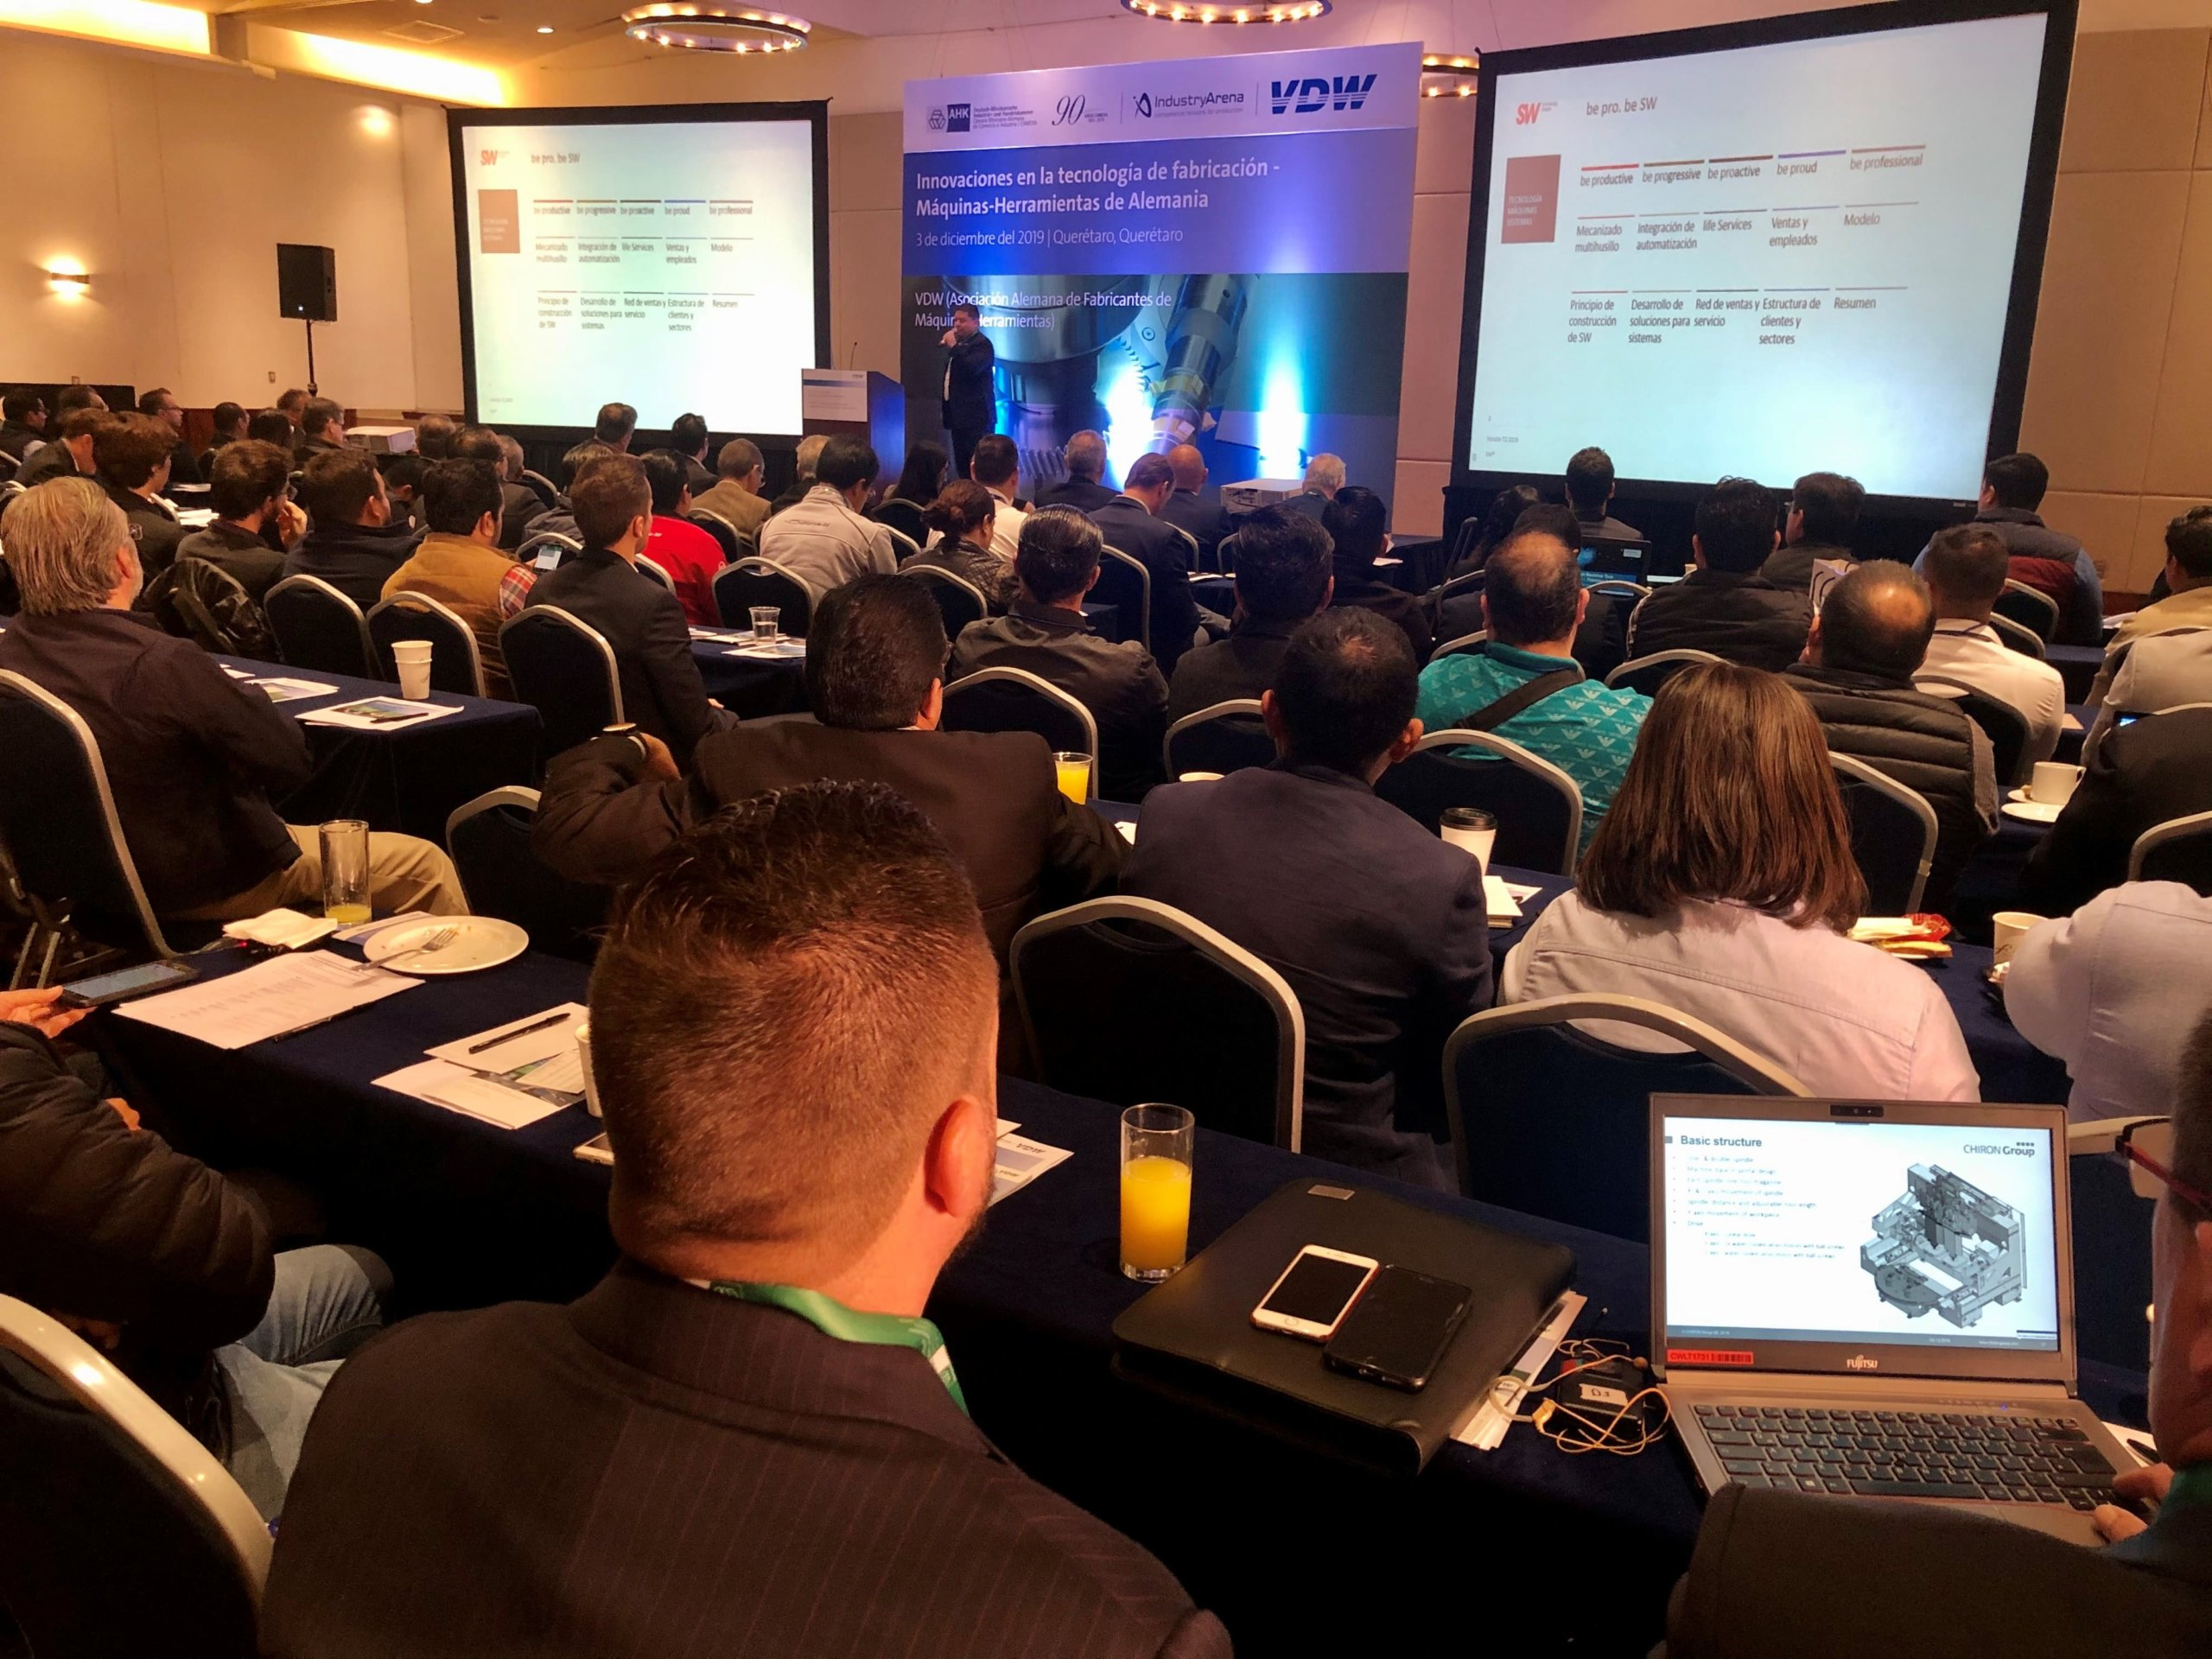 Attracting roughly 300 high-calibre trade visitors, the VDW Mexico Symposia 2019 in Querétaro and Monterrey were a resounding success. The programme included company visits alongside presentations and B2B meetings.